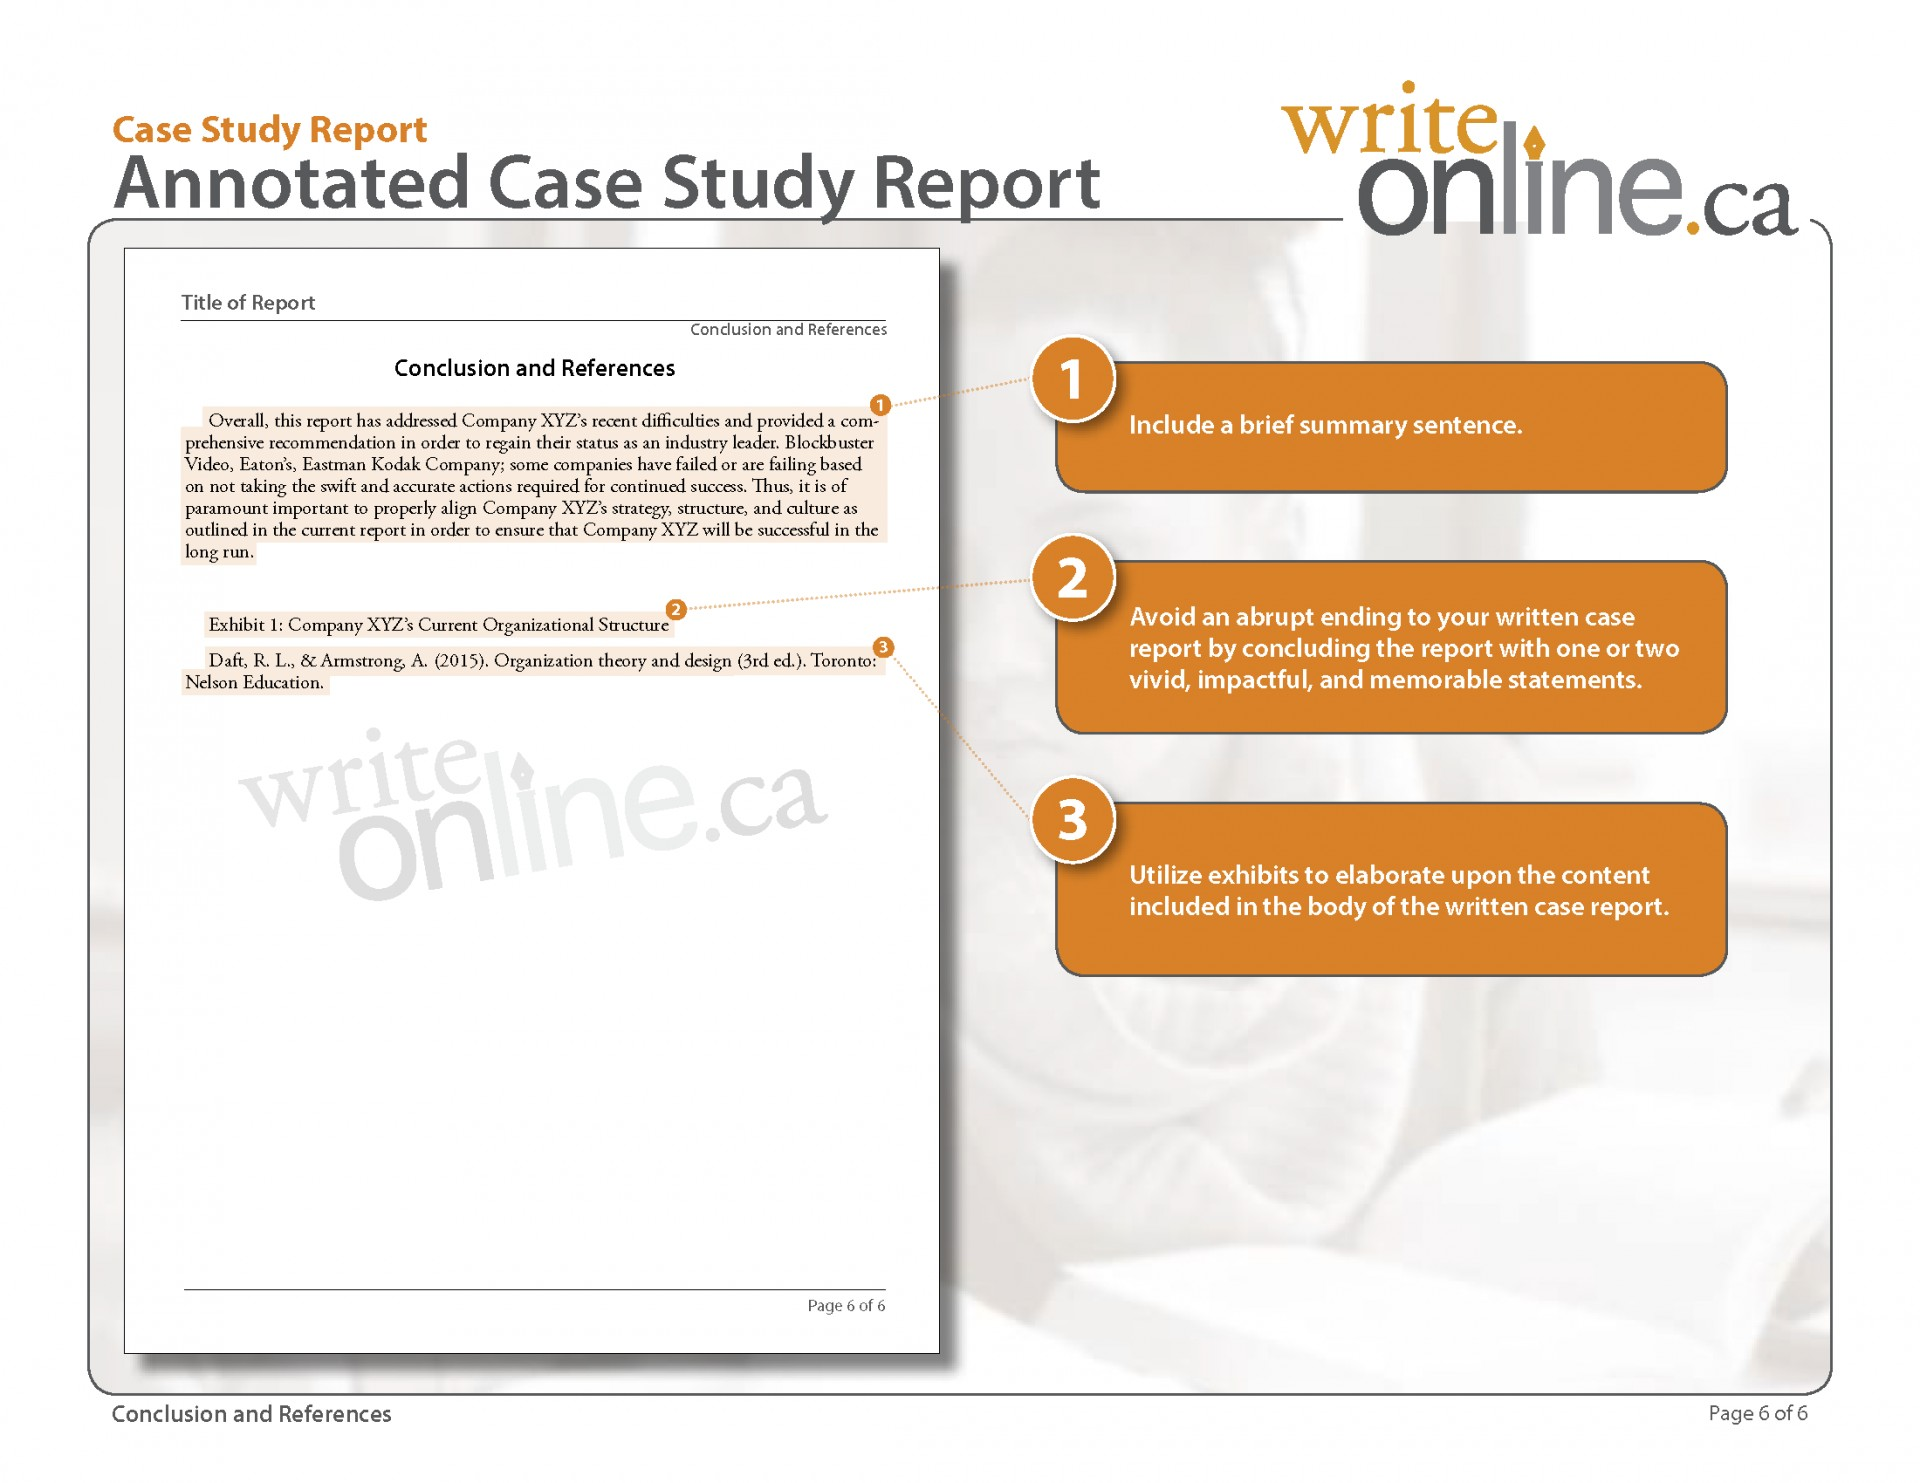 013 Casestudy Annotatedfull Page 6 Component Of Research Paper Archaicawful Pdf Parts Chapter 1 1-5 1920